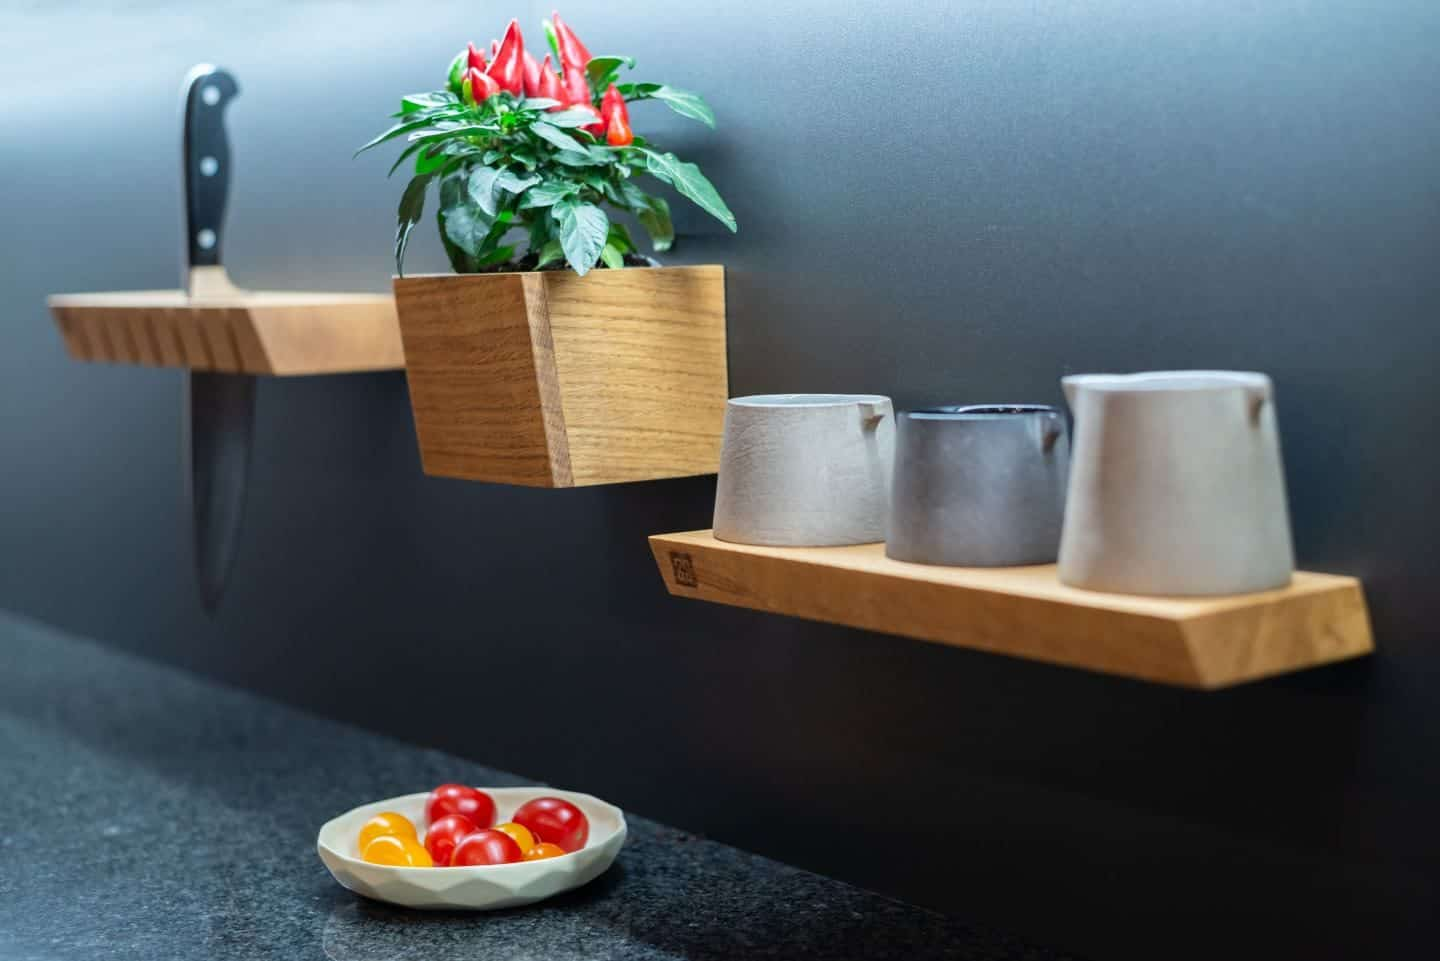 01 Steelline_magnet - Magnetic Storage System by 3s design installed in a kitchen. Photo by Doris Kodric